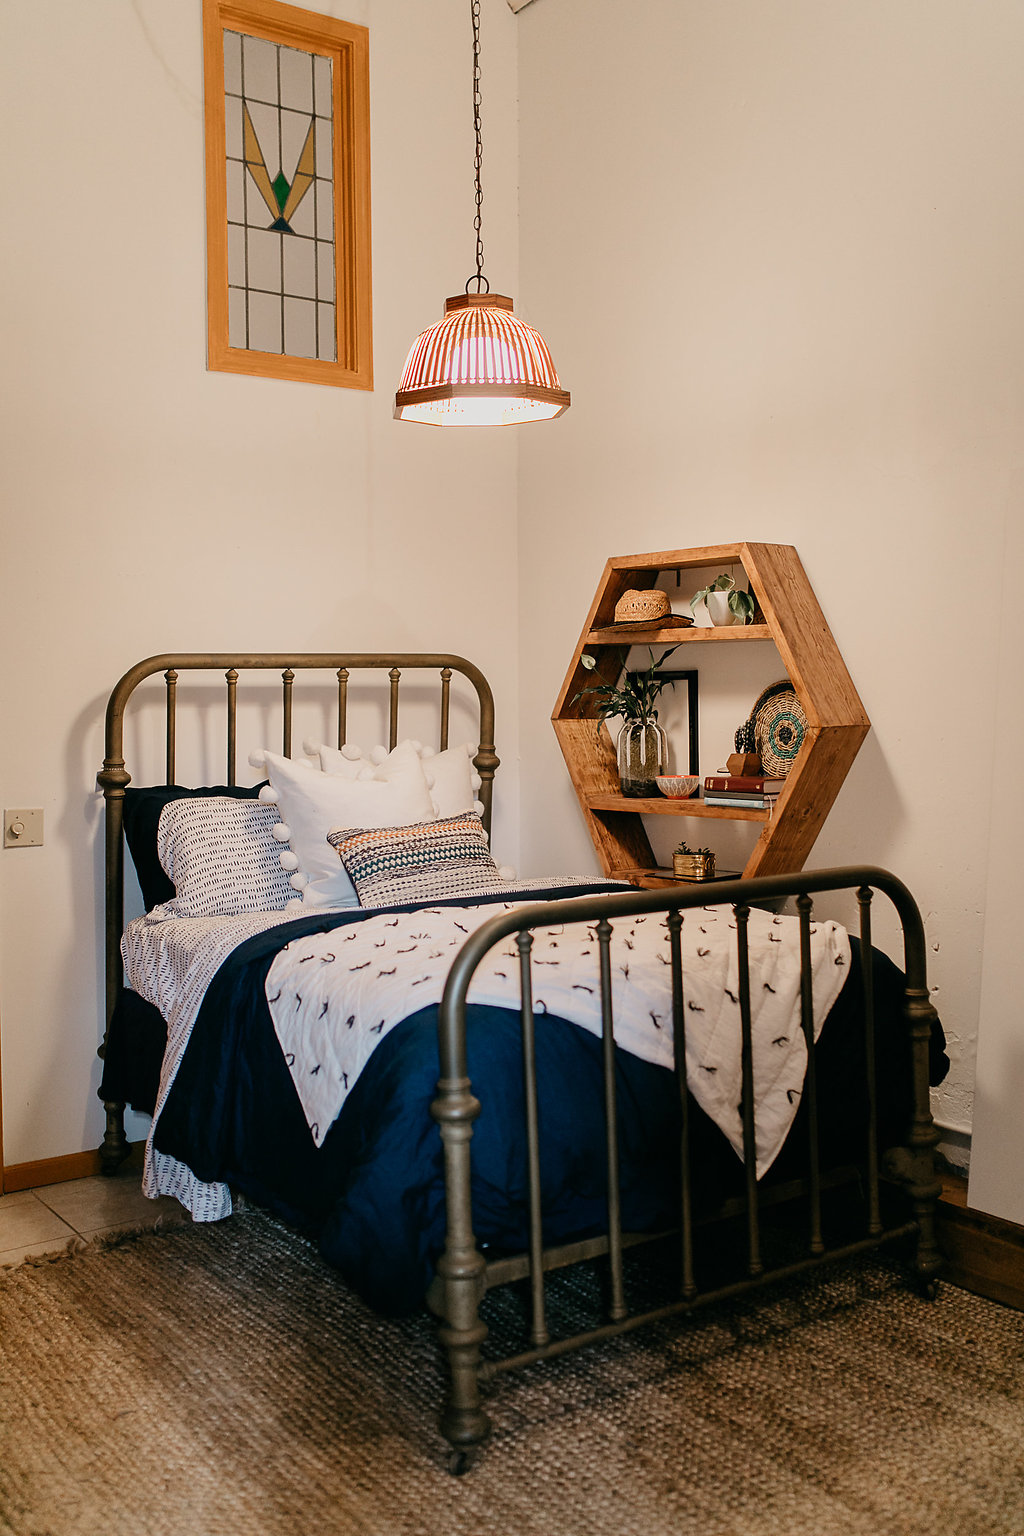 Vintage bed with a hexagon shelf